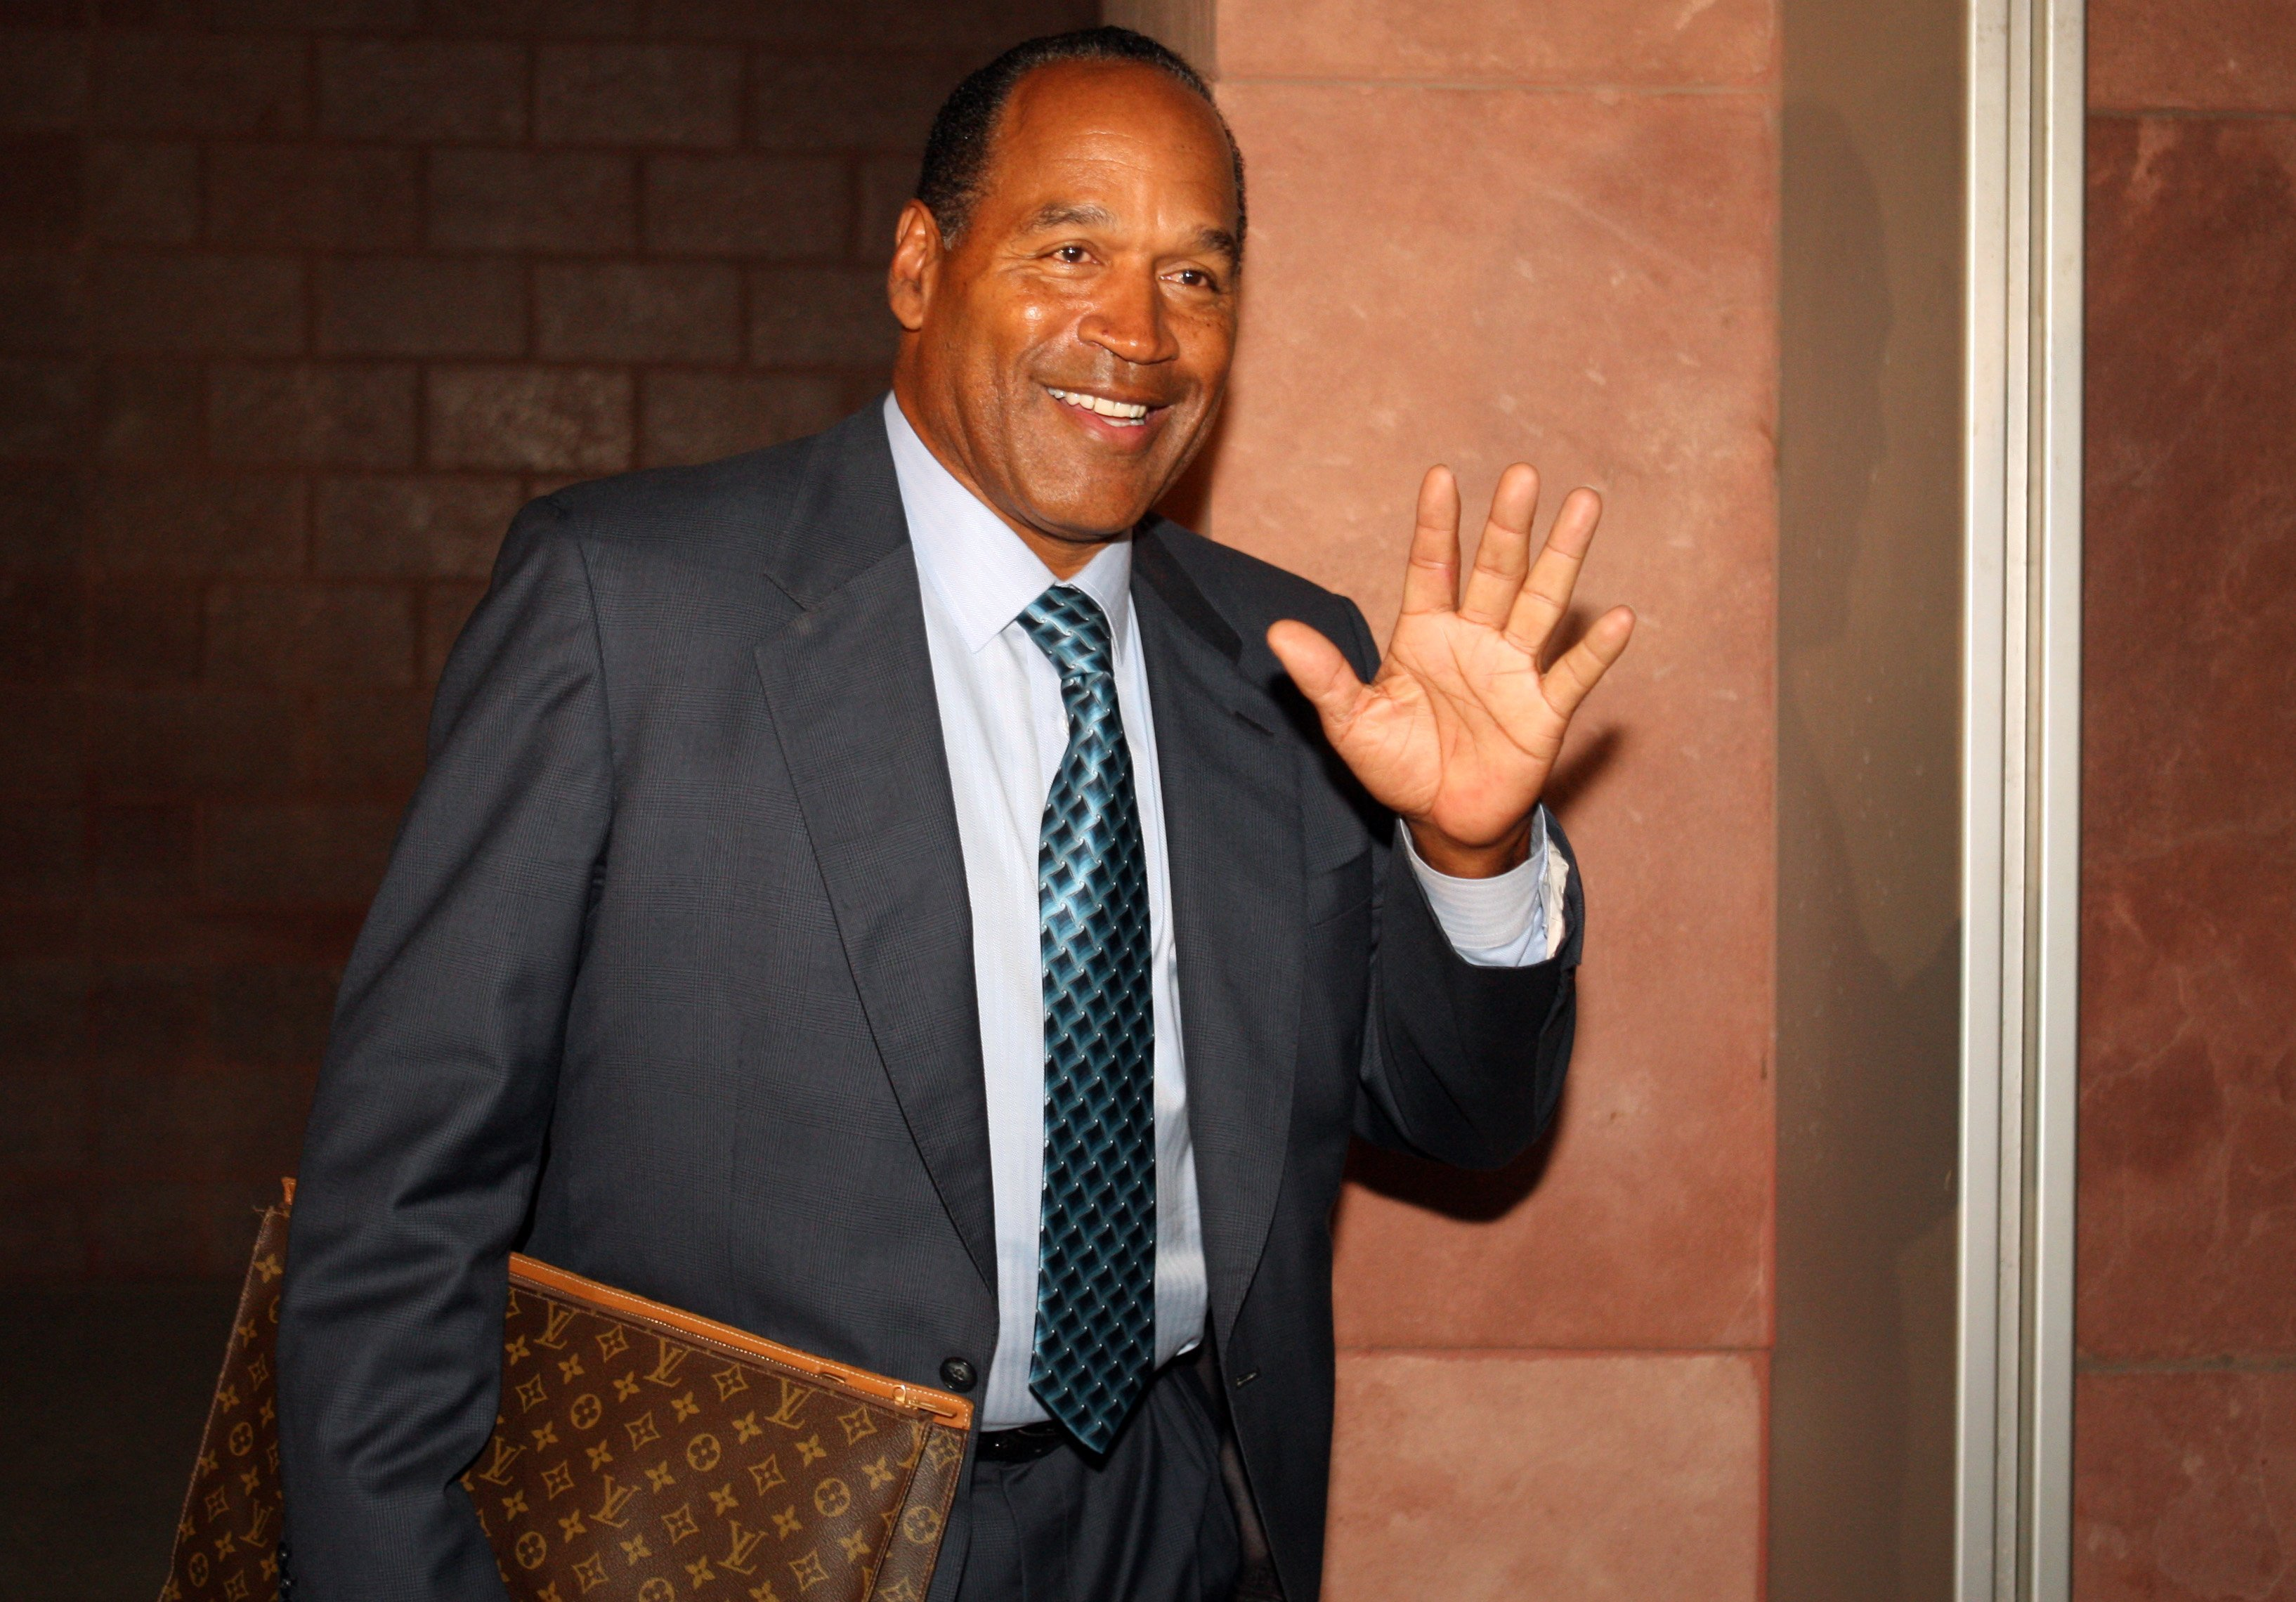 O.J. Simpson at the Clark County Regional Justice Center on October 2, 2008 in Las Vegas, Nevada | Source: Getty Images/Global Images Ukraine